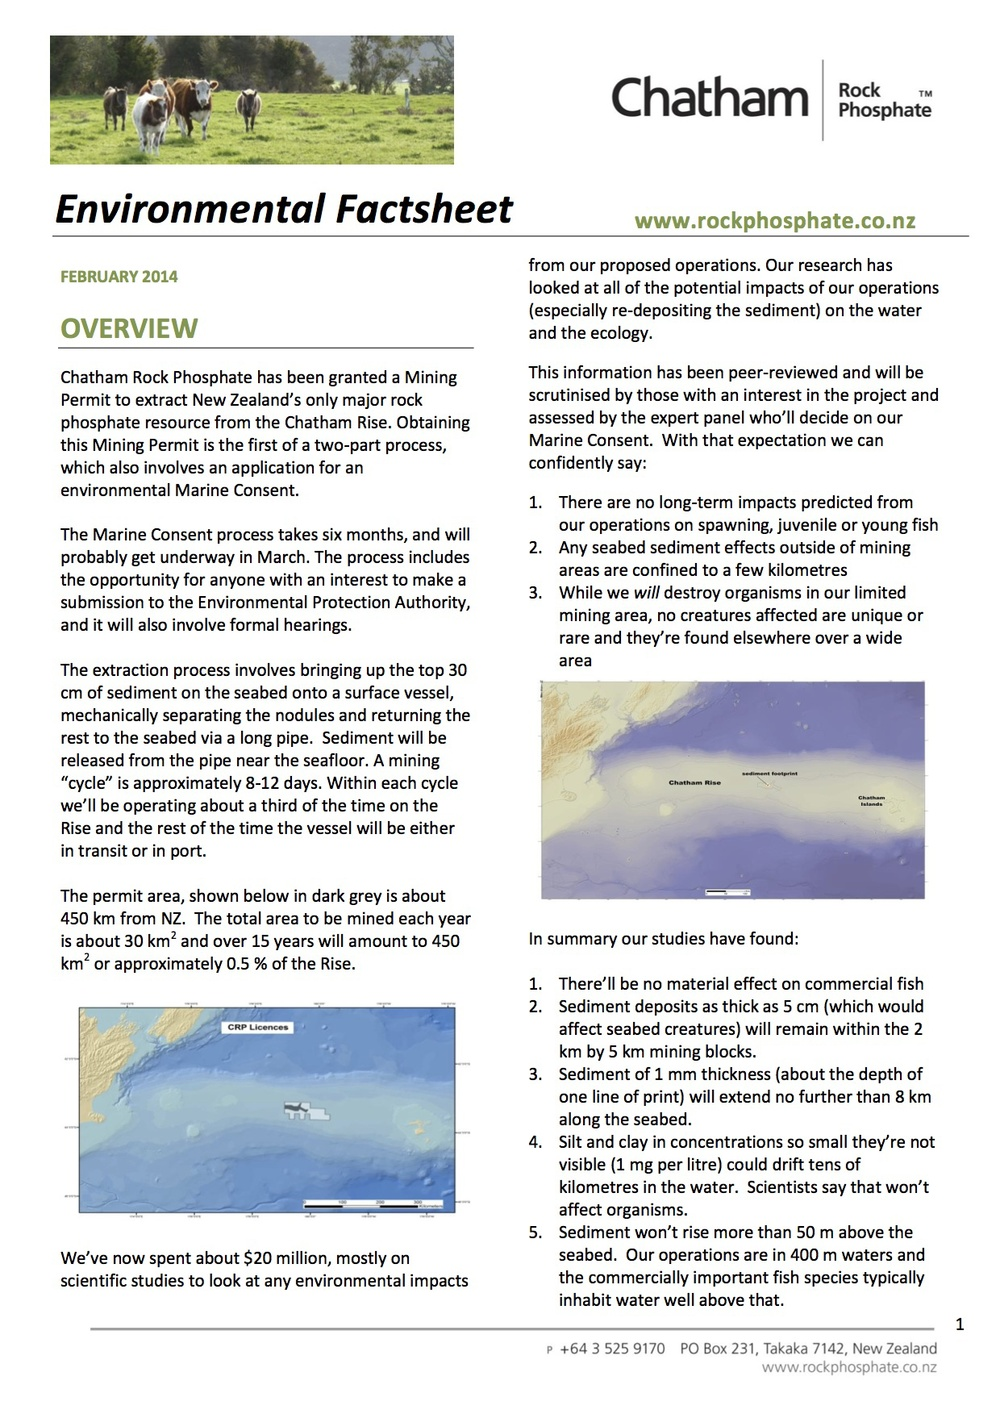 Environmental Fact Sheet Feb 2014.jpg